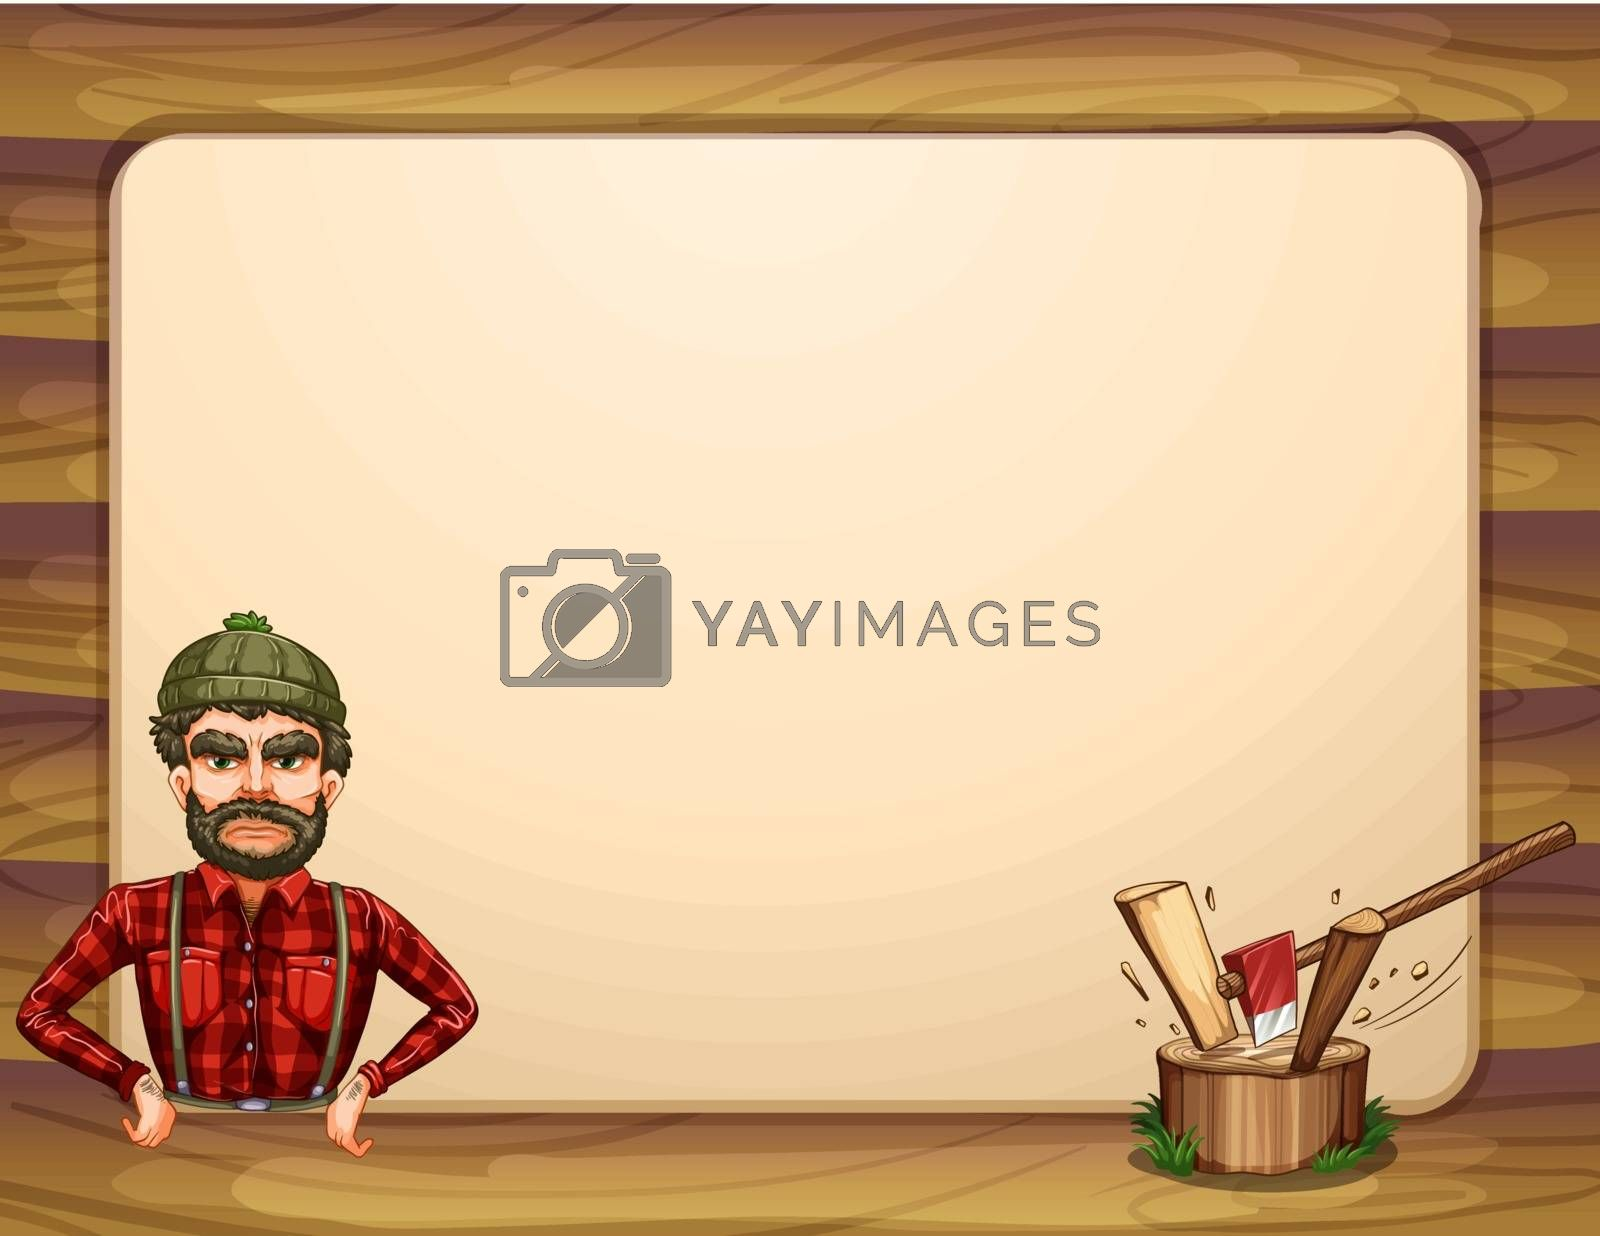 Illustration of an empty wooden frame template with a lumberjack